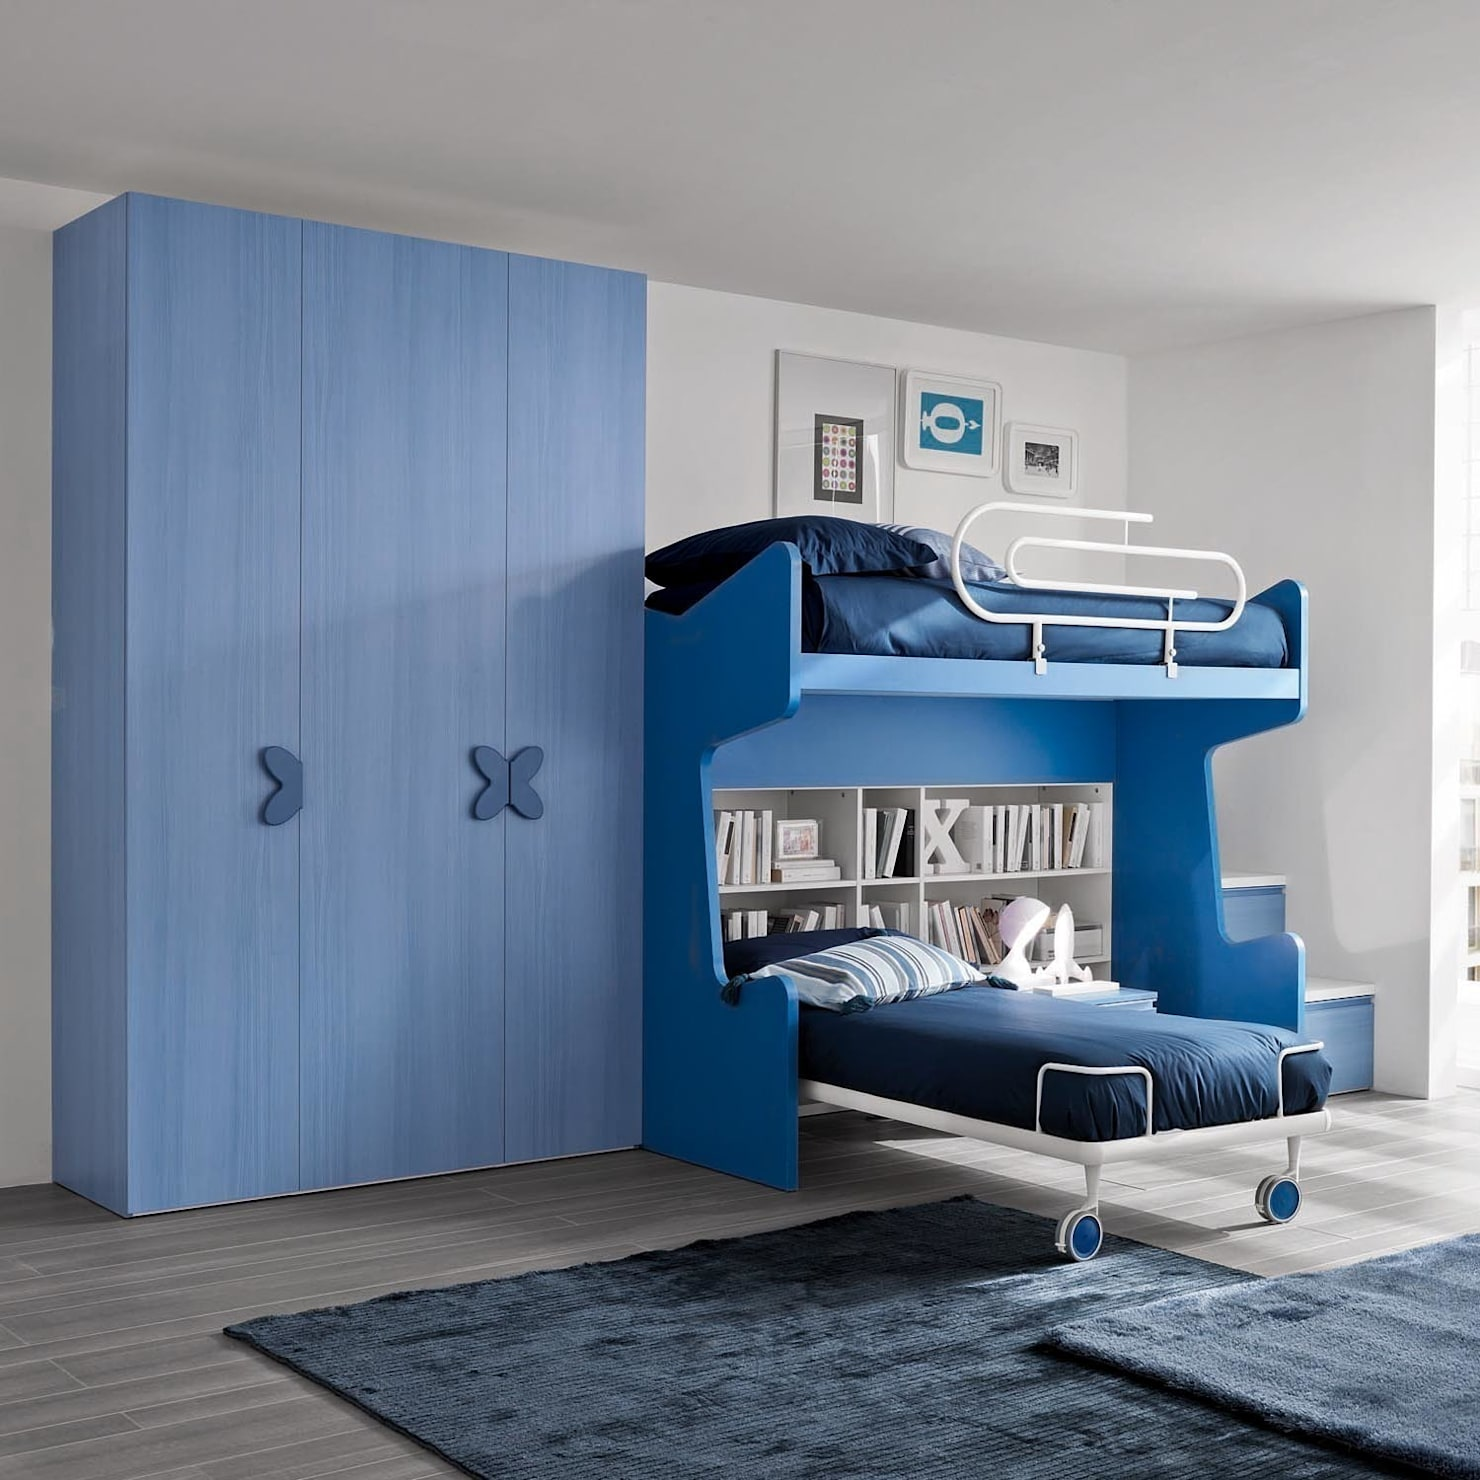 12 funky kids bedrooms that will earn you serious cool parent points!